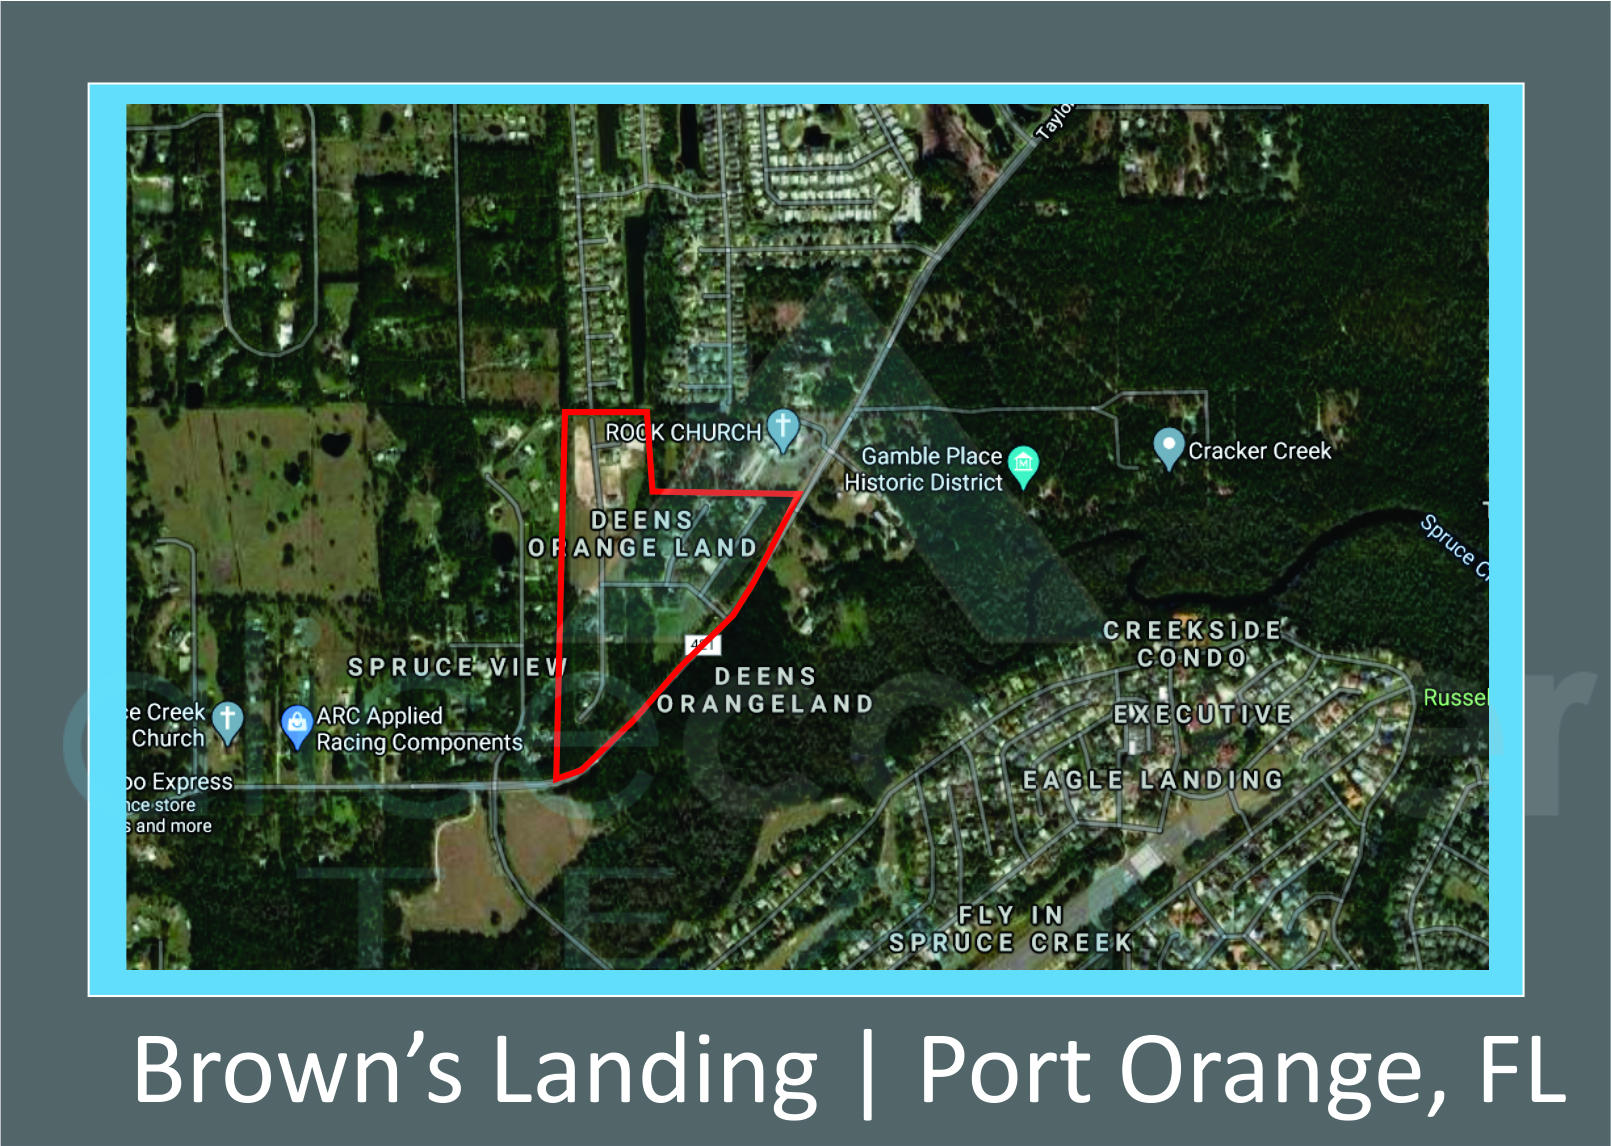 Map of Brown's Landing, Port Orange, FL